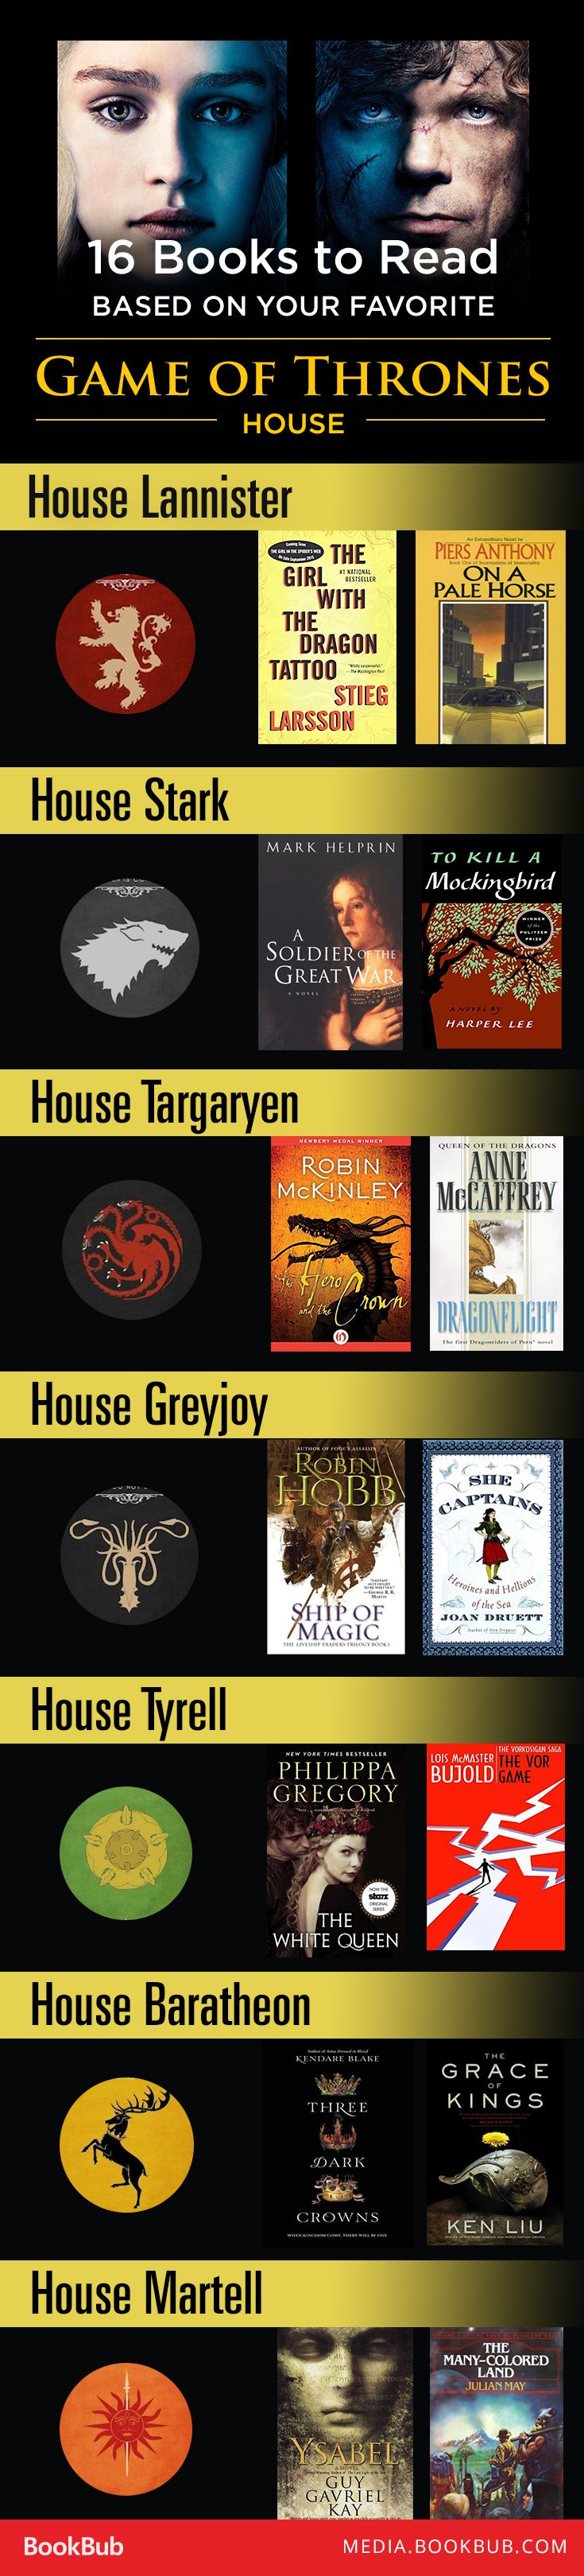 16 books to read based on your favorite Game of Thrones house and characters. Are you a fan of House Lannister? Check out The Girl with the Dragon Tattoo by Stieg Larsson.